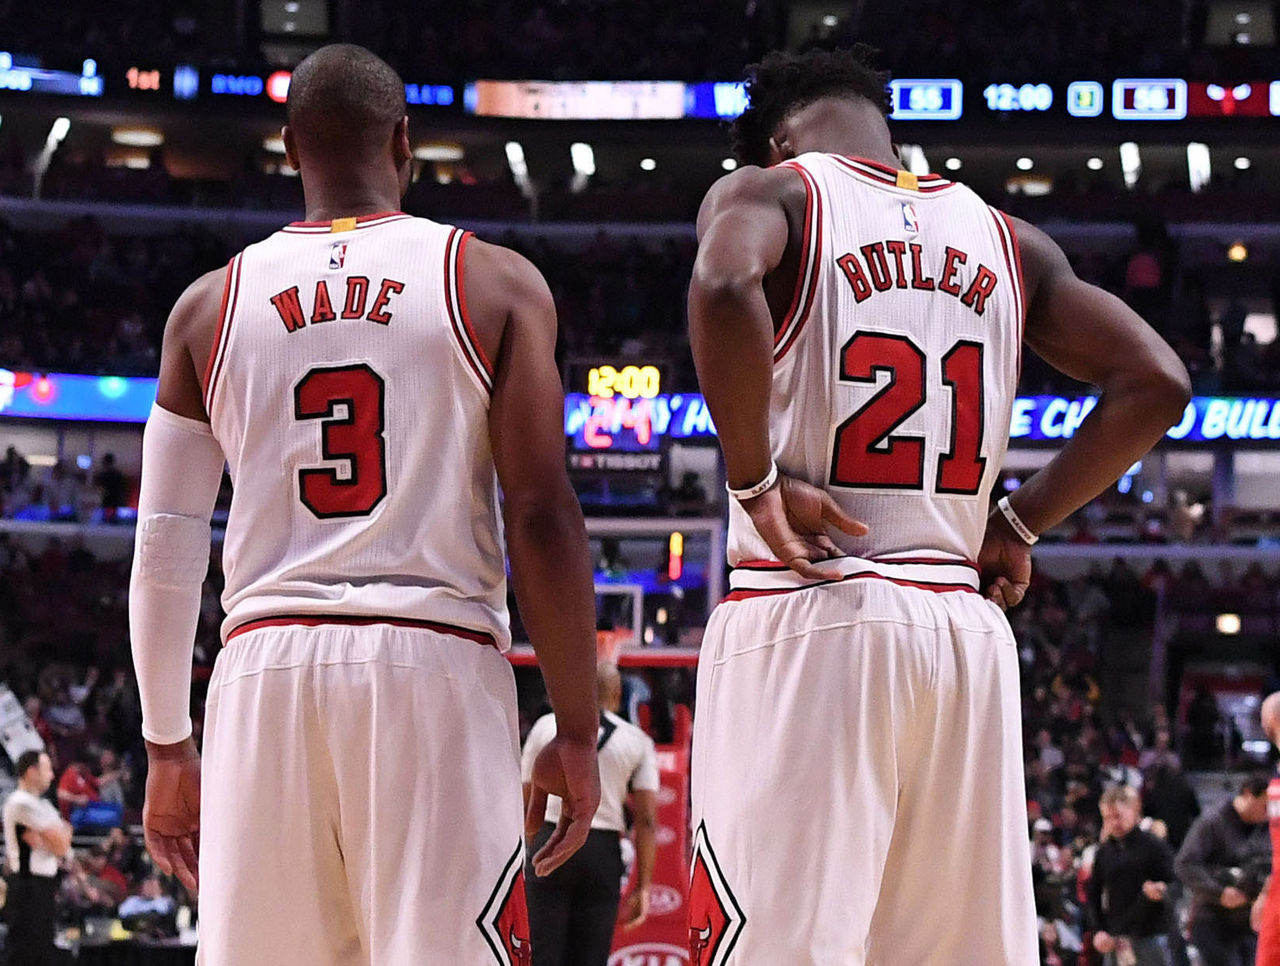 Cropped_2016-12-22t033050z_387511310_nocid_rtrmadp_3_nba-washington-wizards-at-chicago-bulls